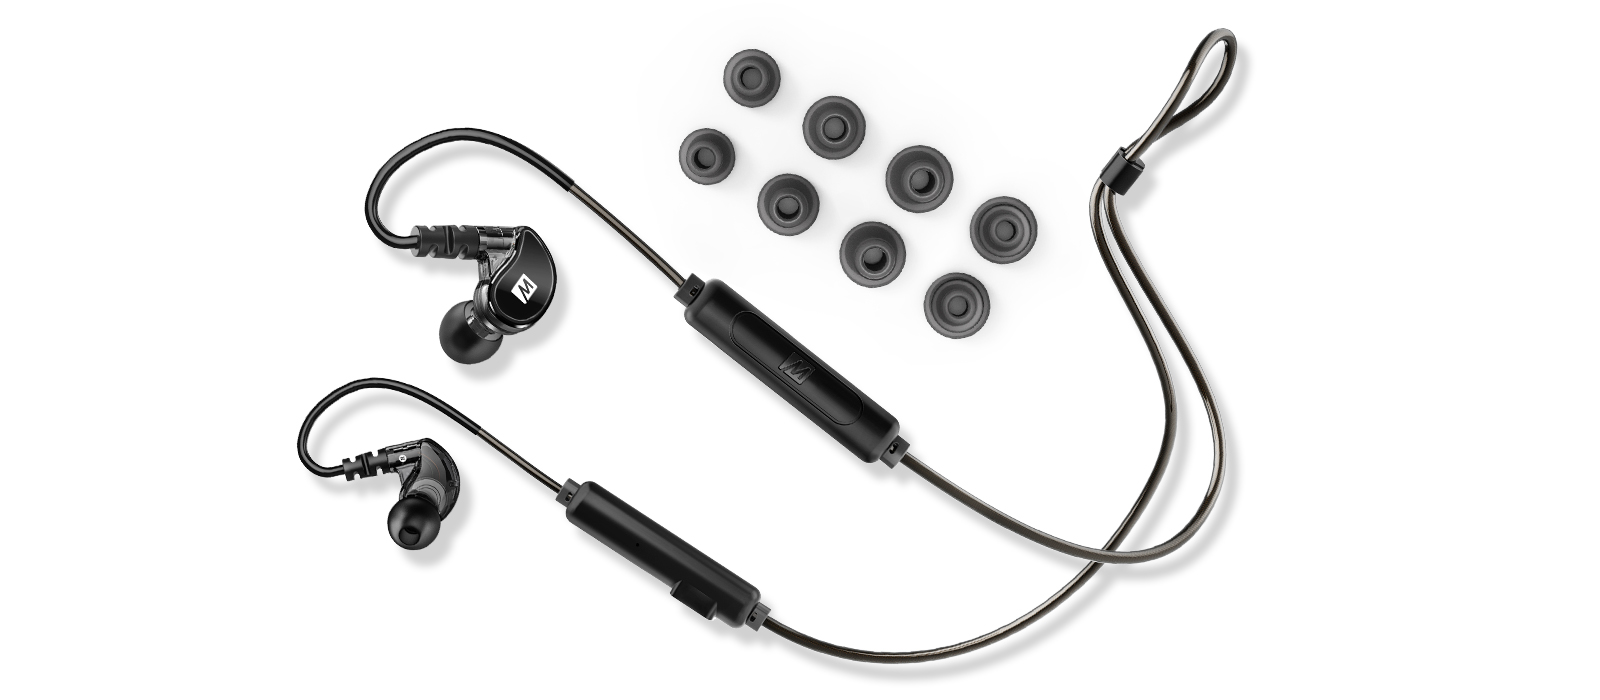 Mee Audio X6 Gen 2 Wireless Sports In-Ear Earphone